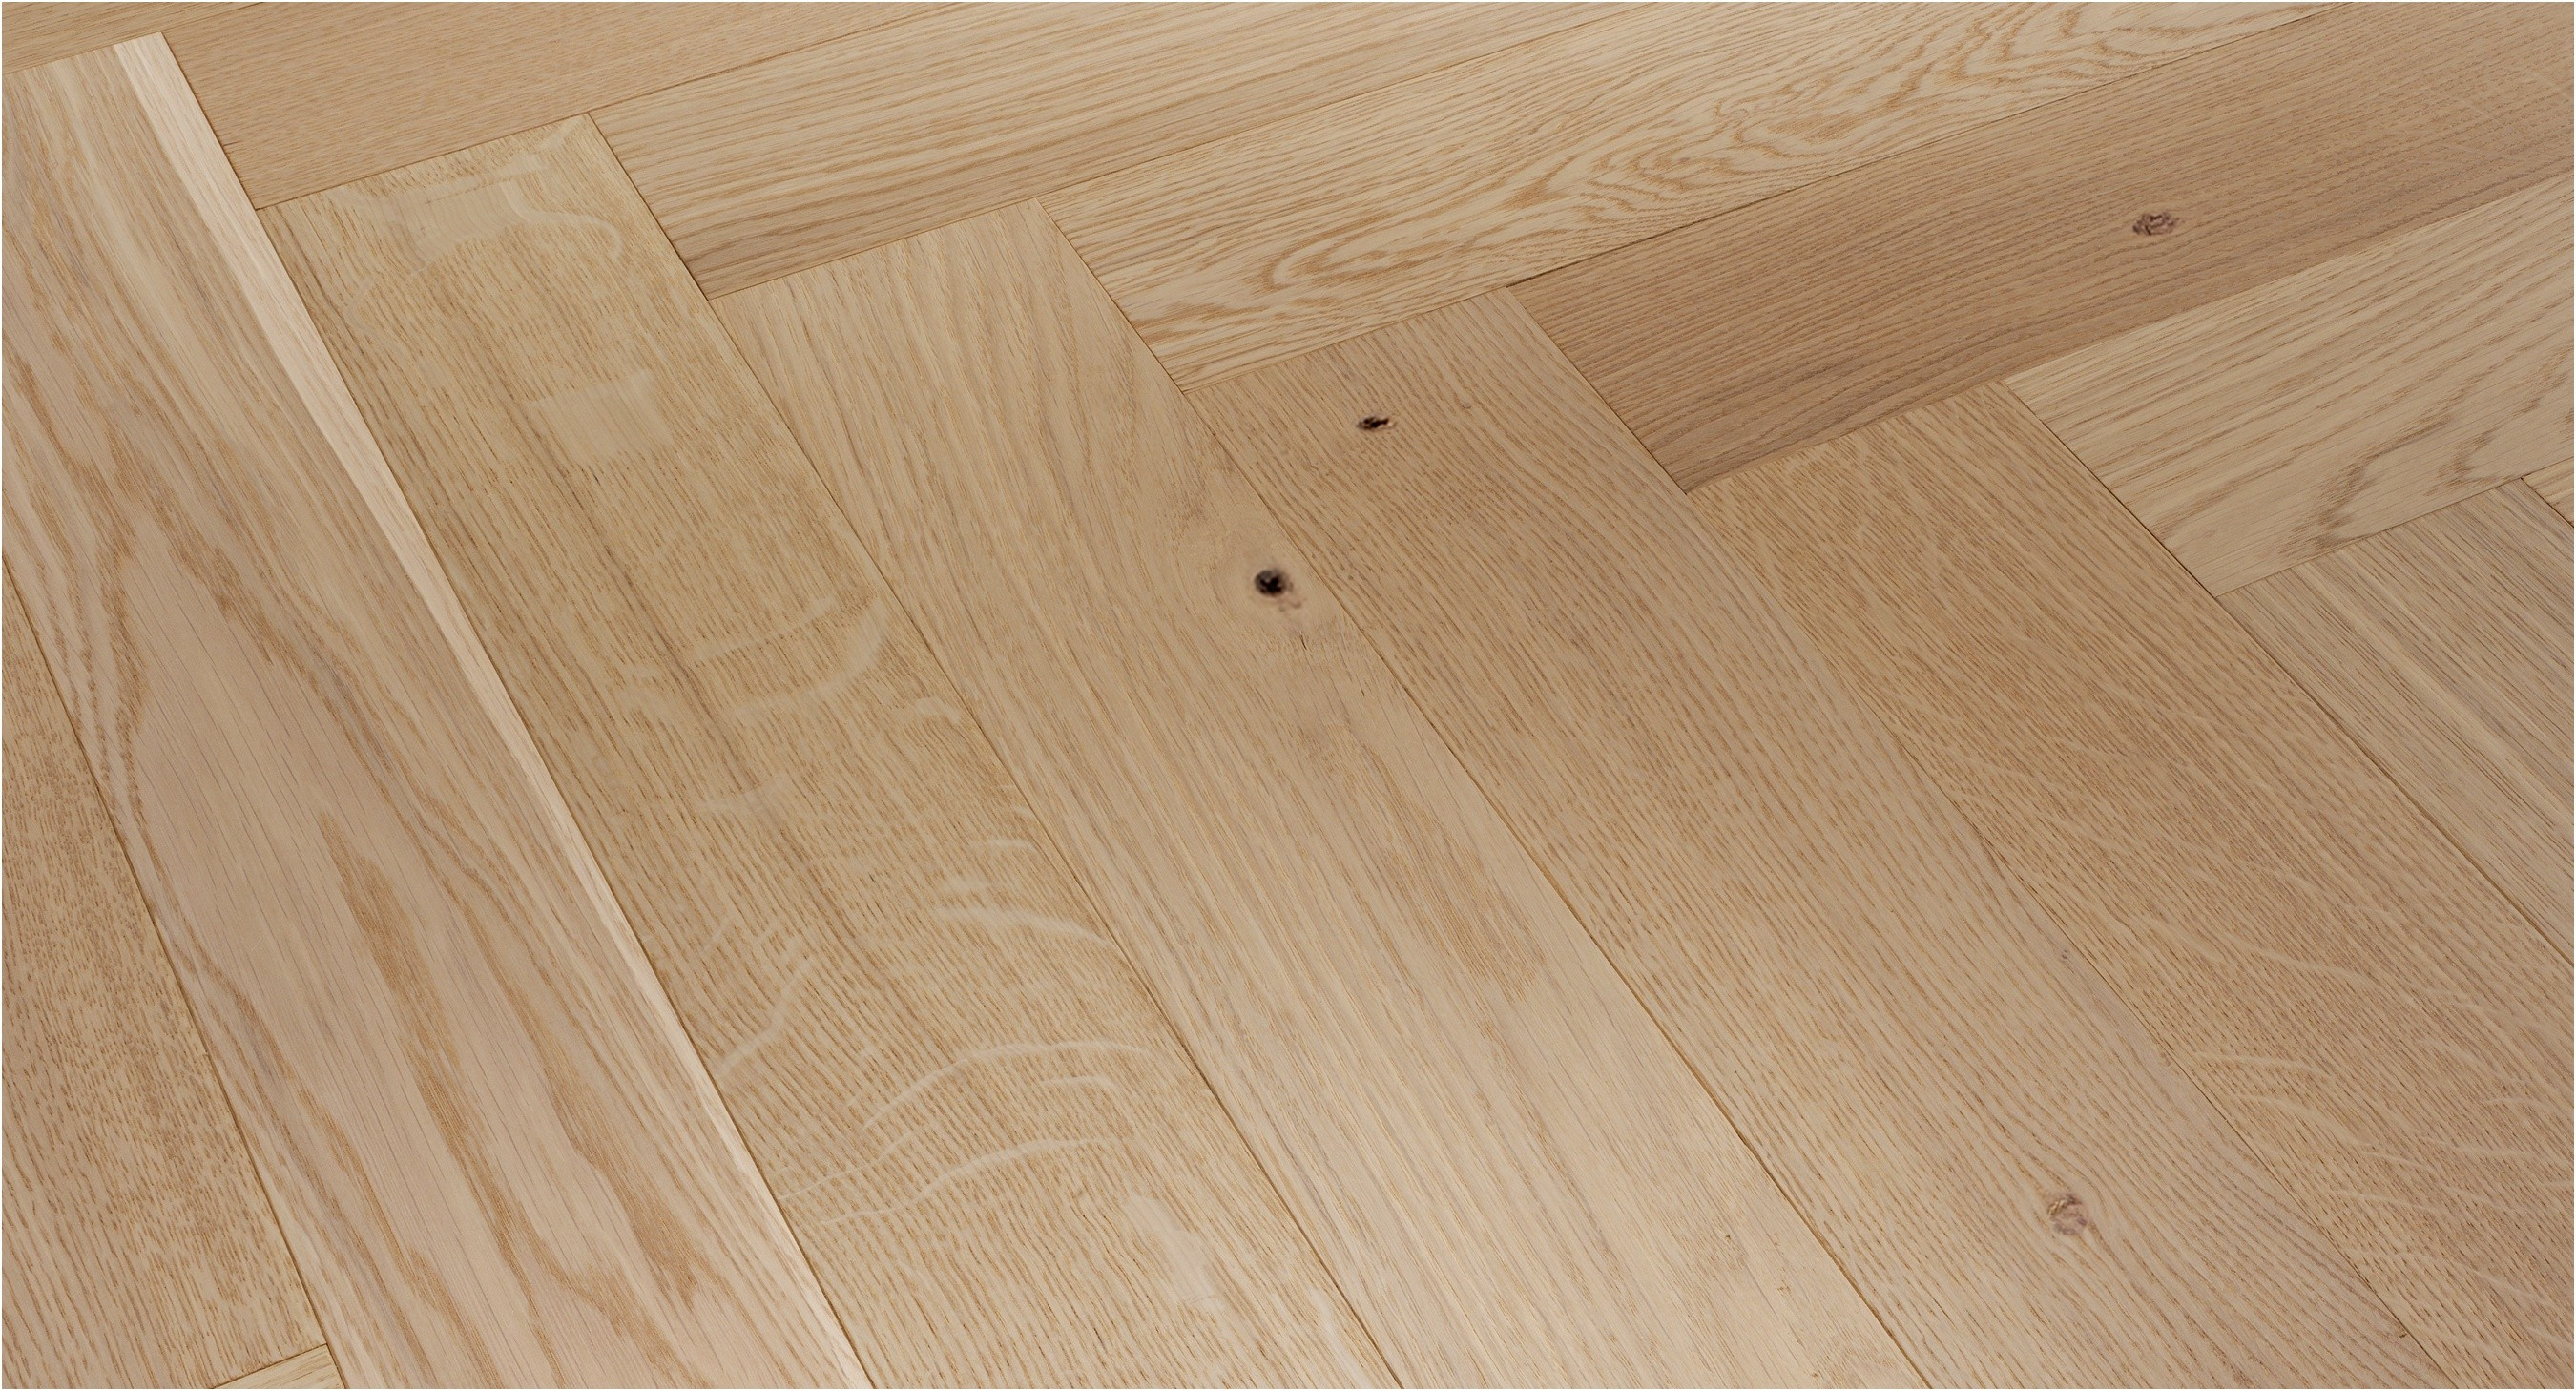 hardwood flooring faq of 19 awesome hardwood flooring for sale photograph dizpos com in hardwood flooring for sale awesome flooring sale near me stock 0d grace place barnegat nj photos